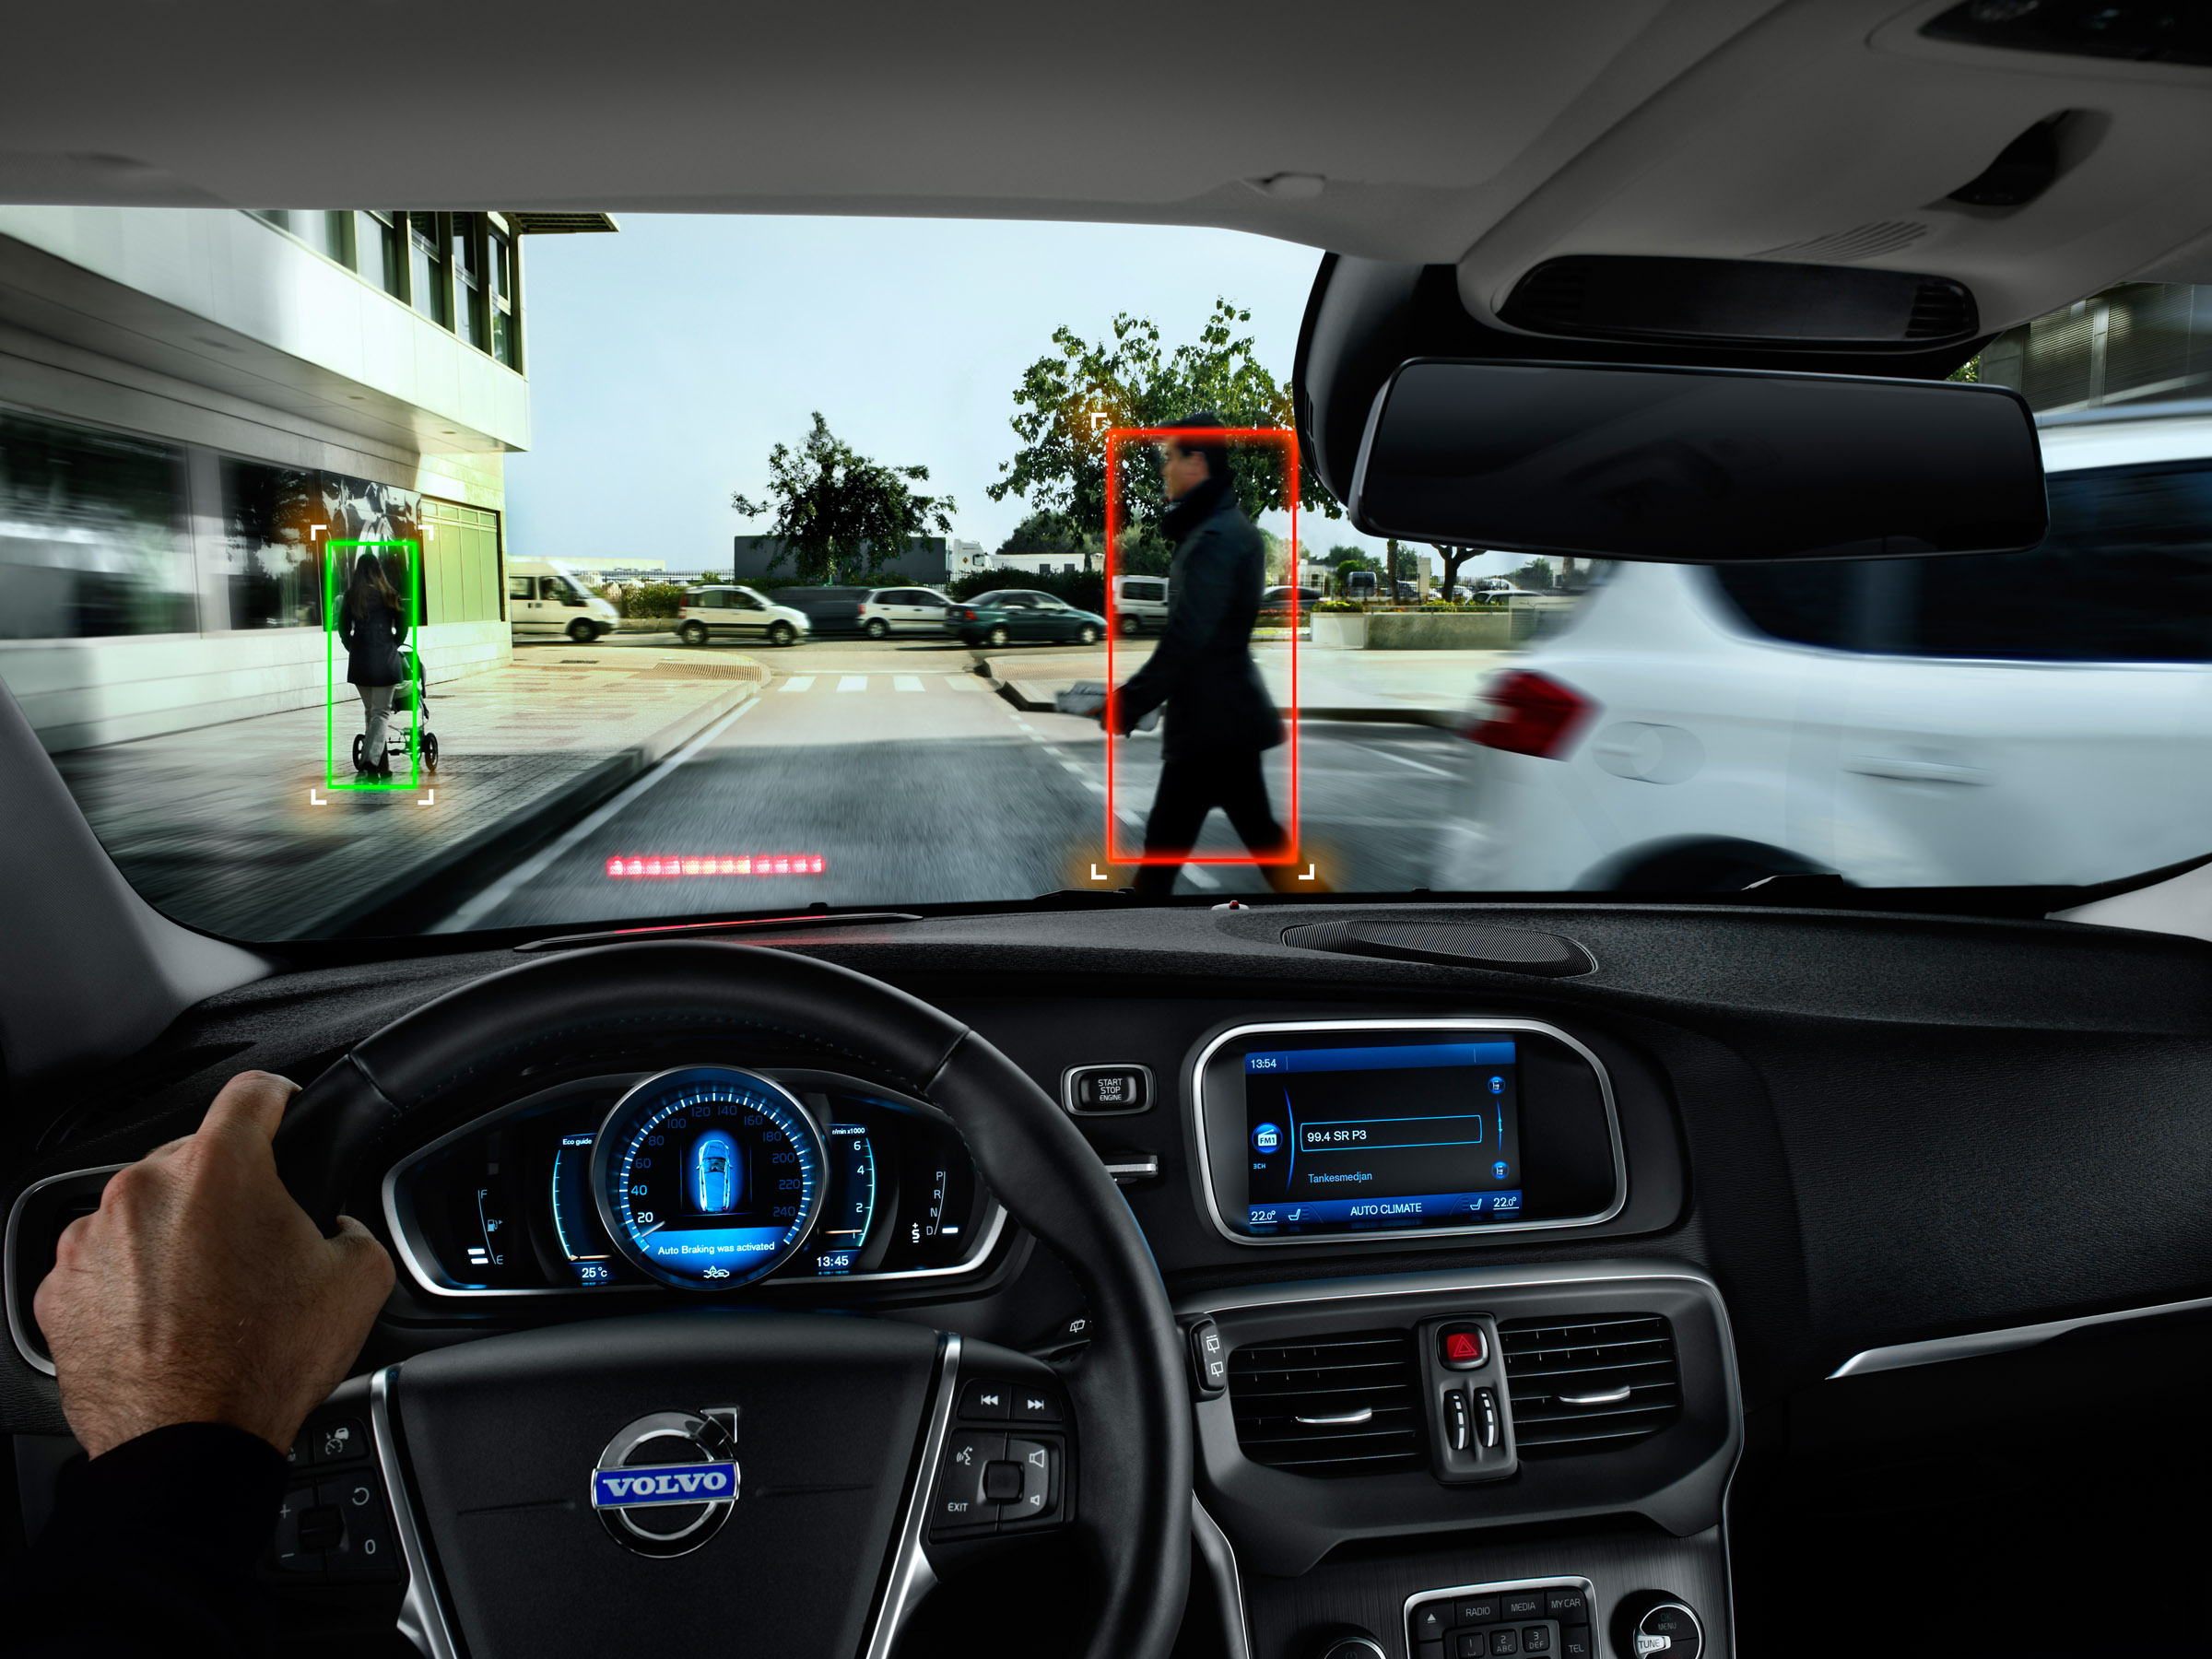 Auto-brake-system 5 Surprising Reasons Tech Lovers Should Shop Used Cars